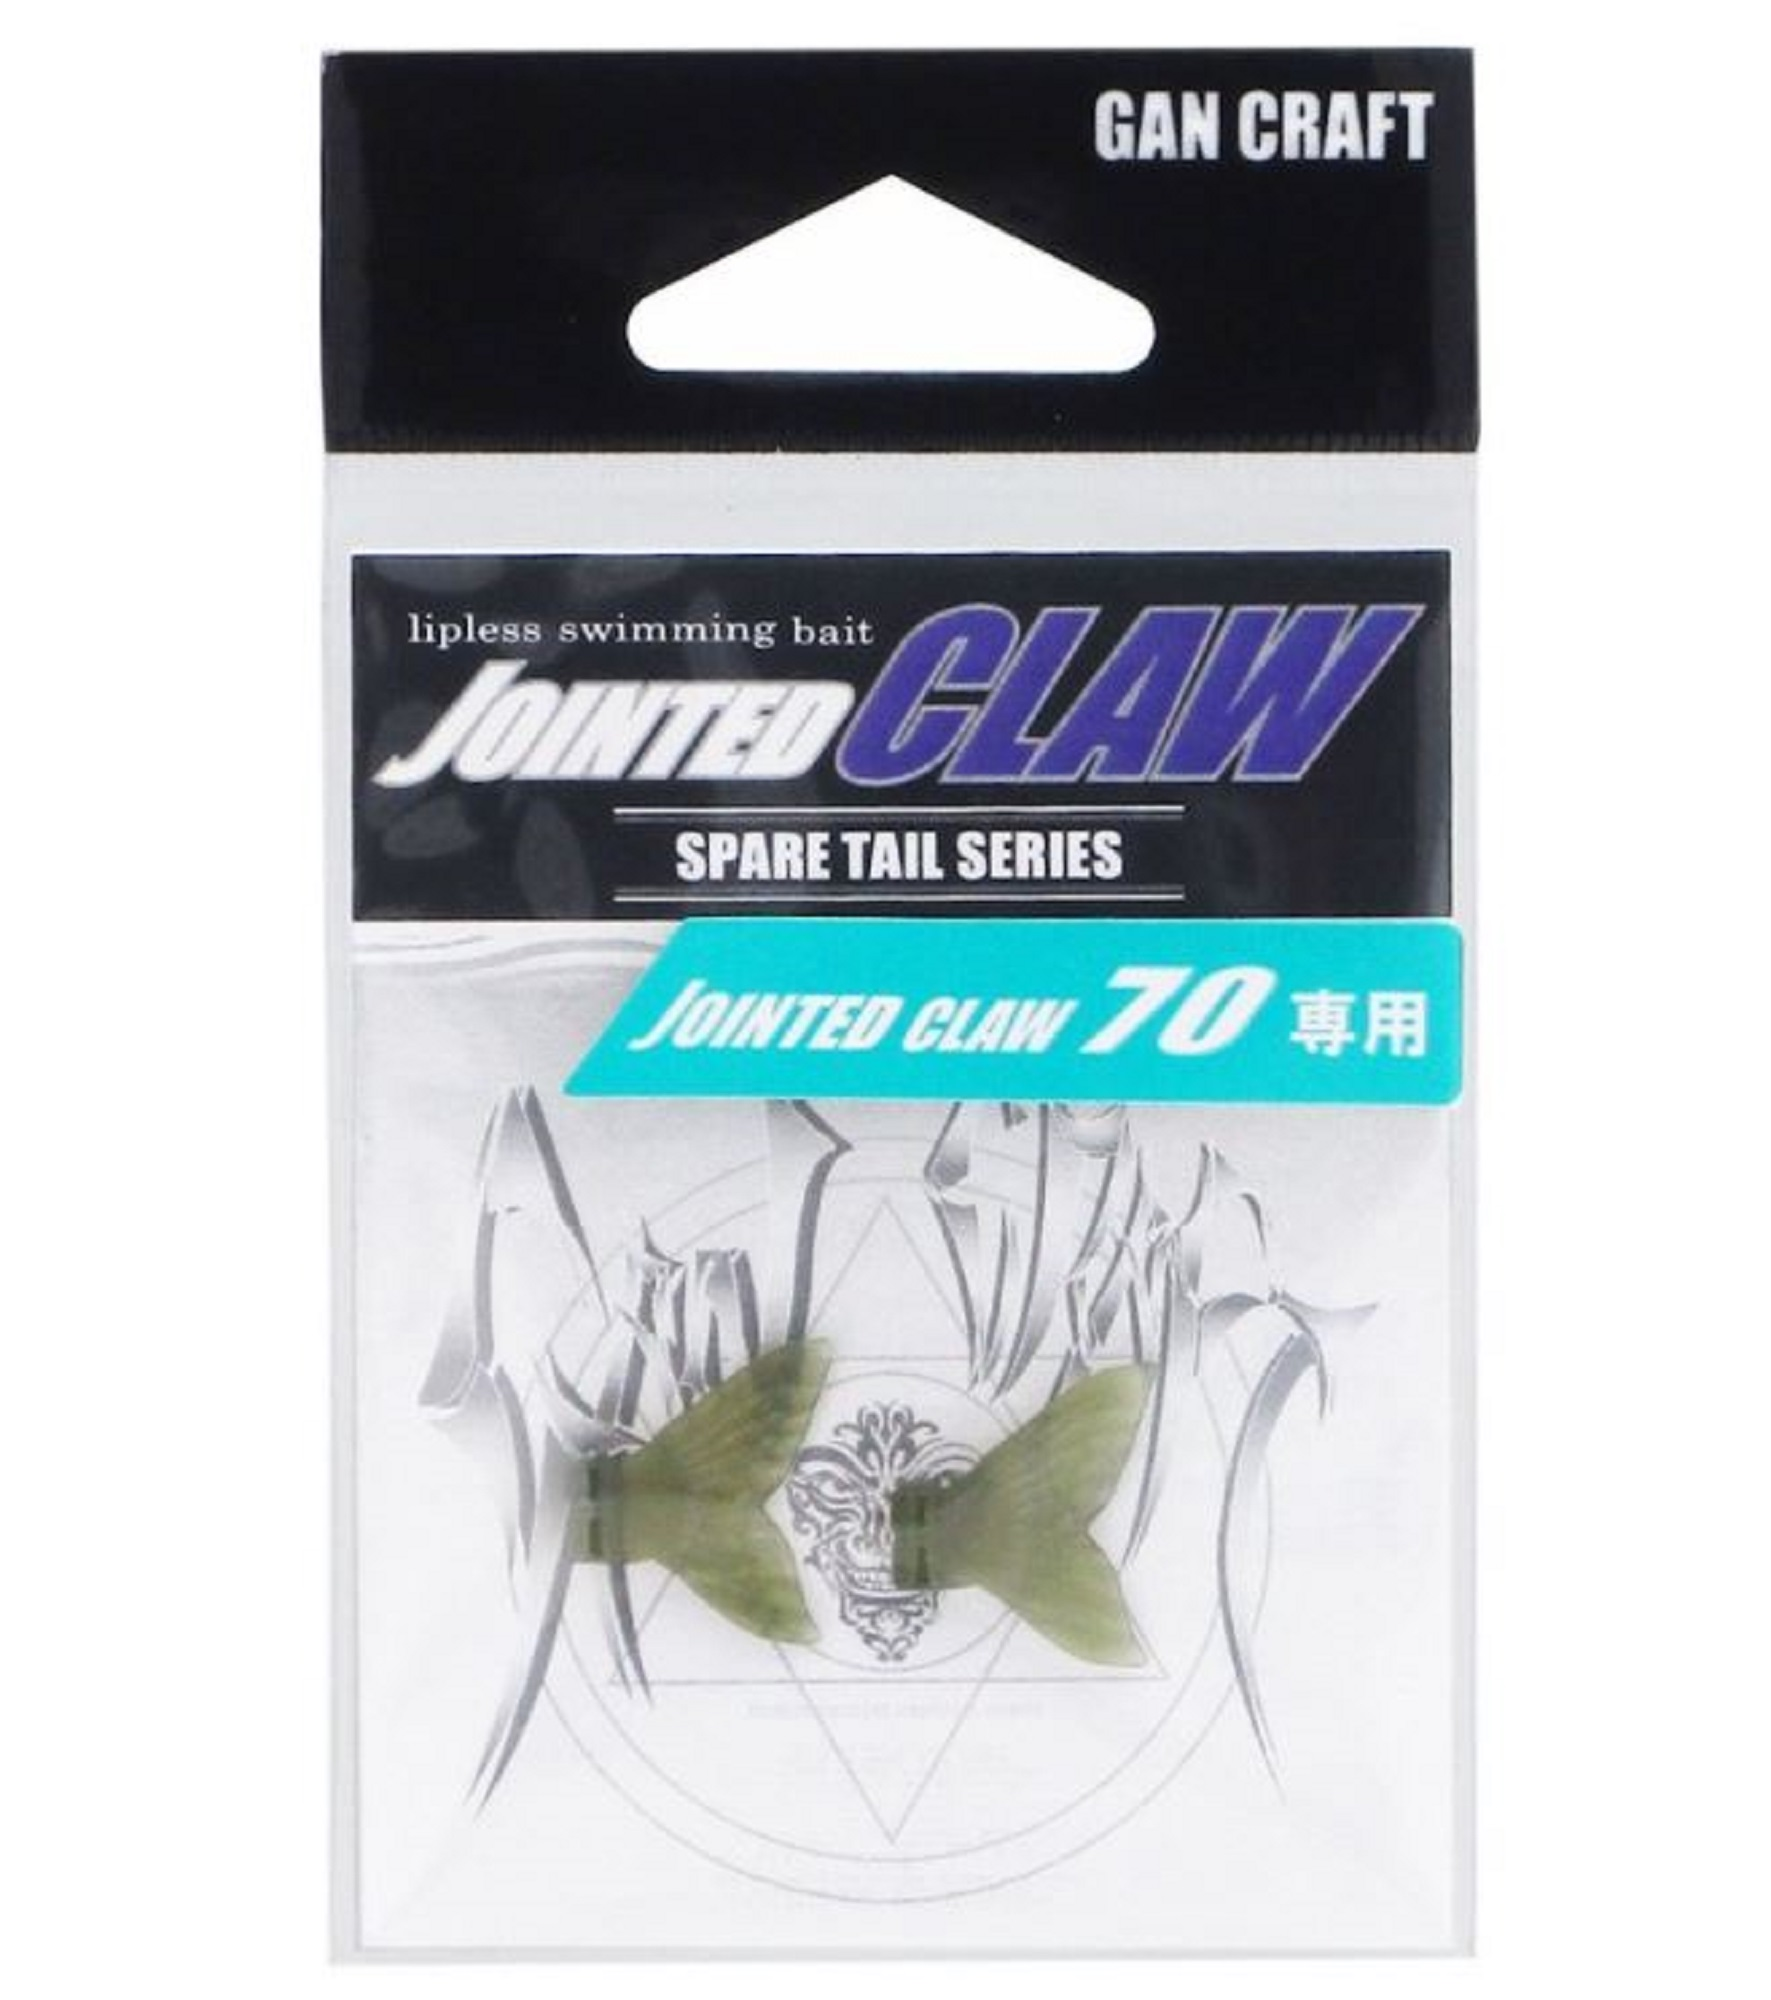 Gan Craft Jointed Claw 70 Spare Tail Normal 02 (7242)